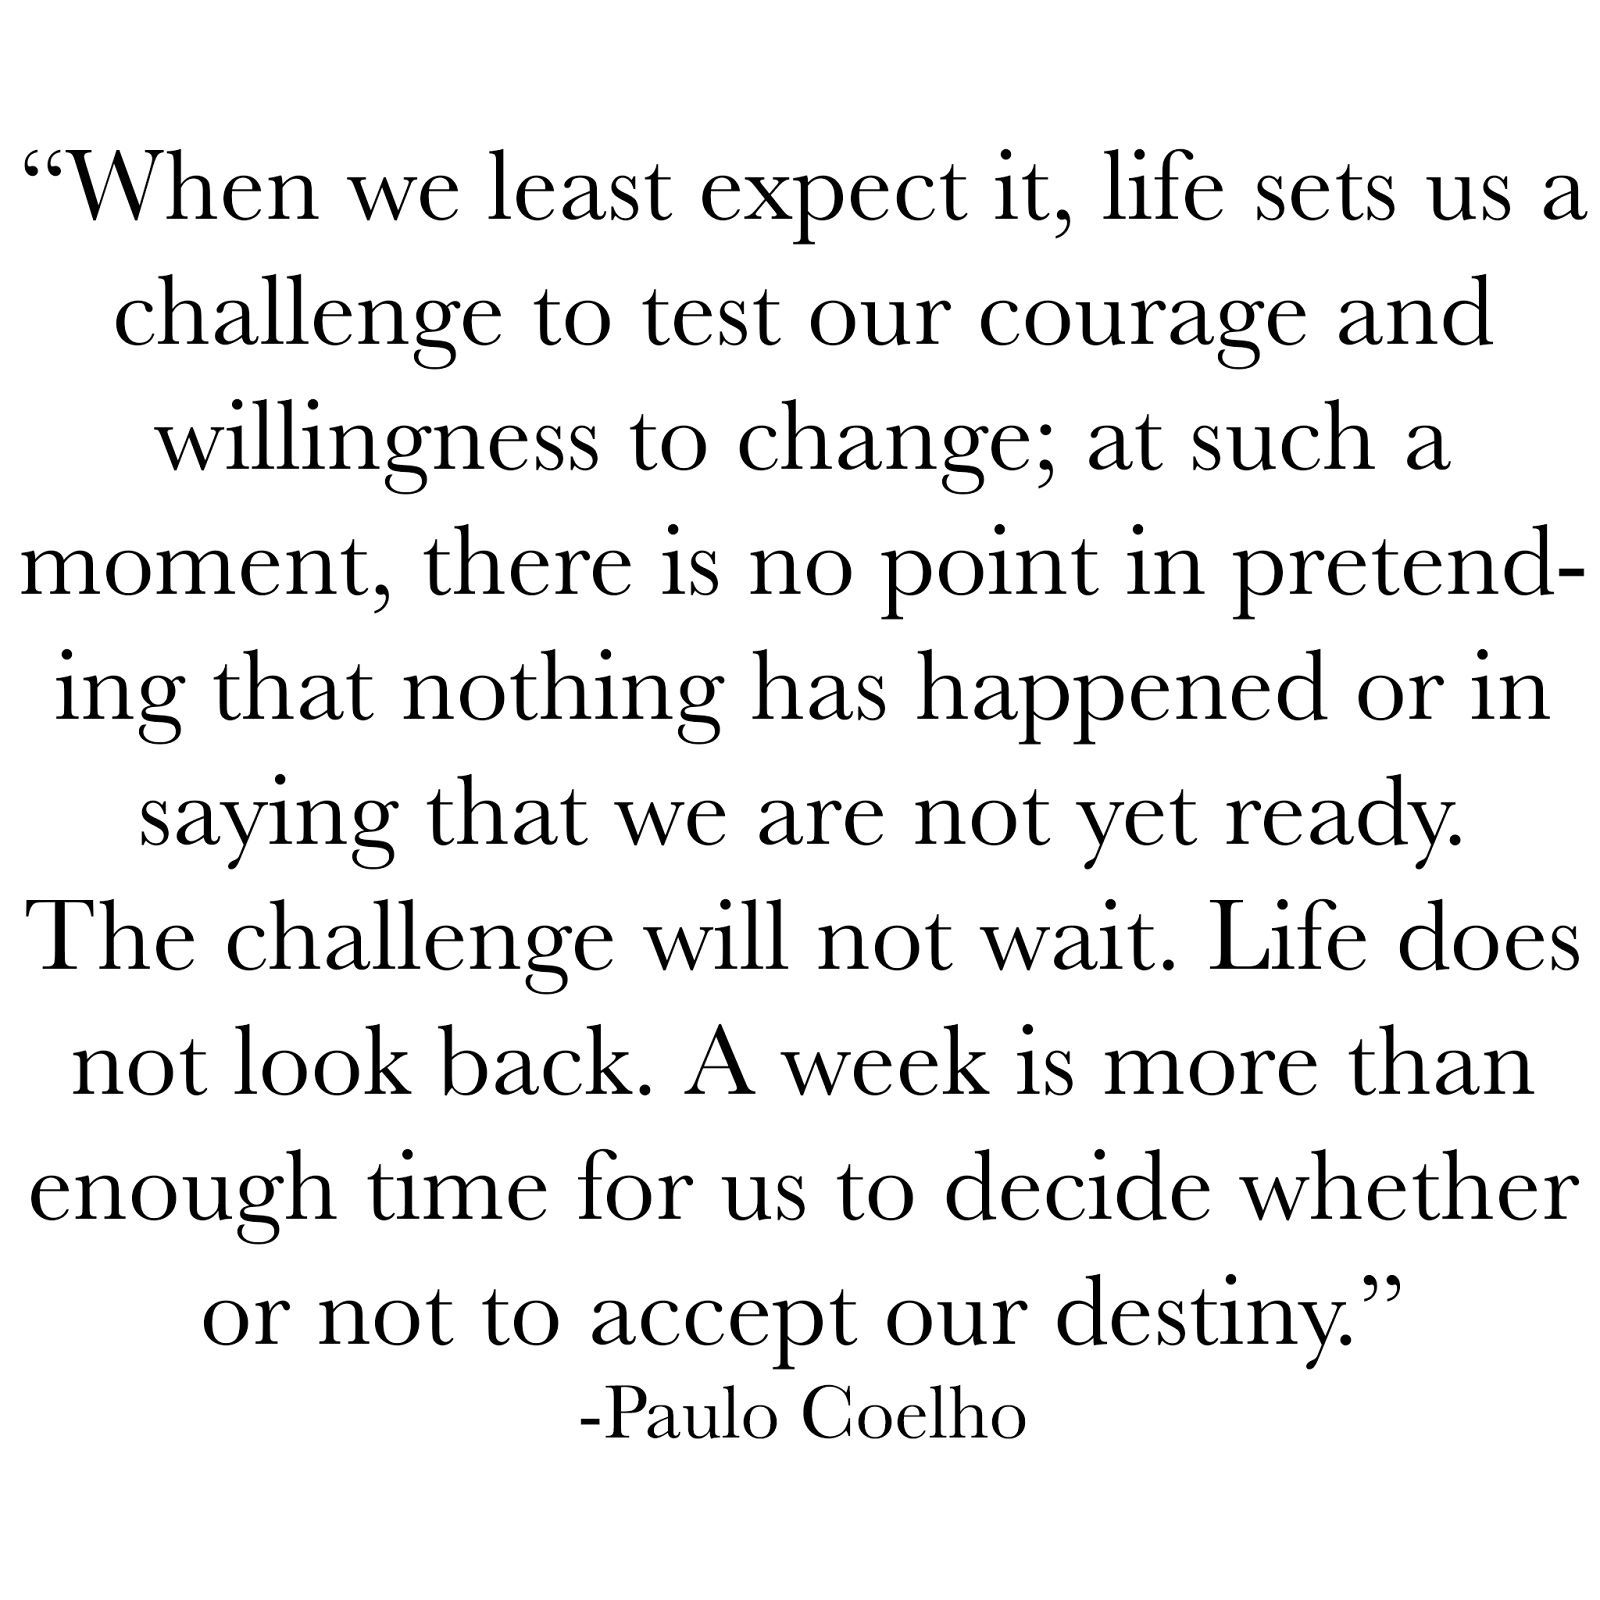 When We Least Expect It Life Sets Us A Challenge To Test Our Courage And Willingness To Change